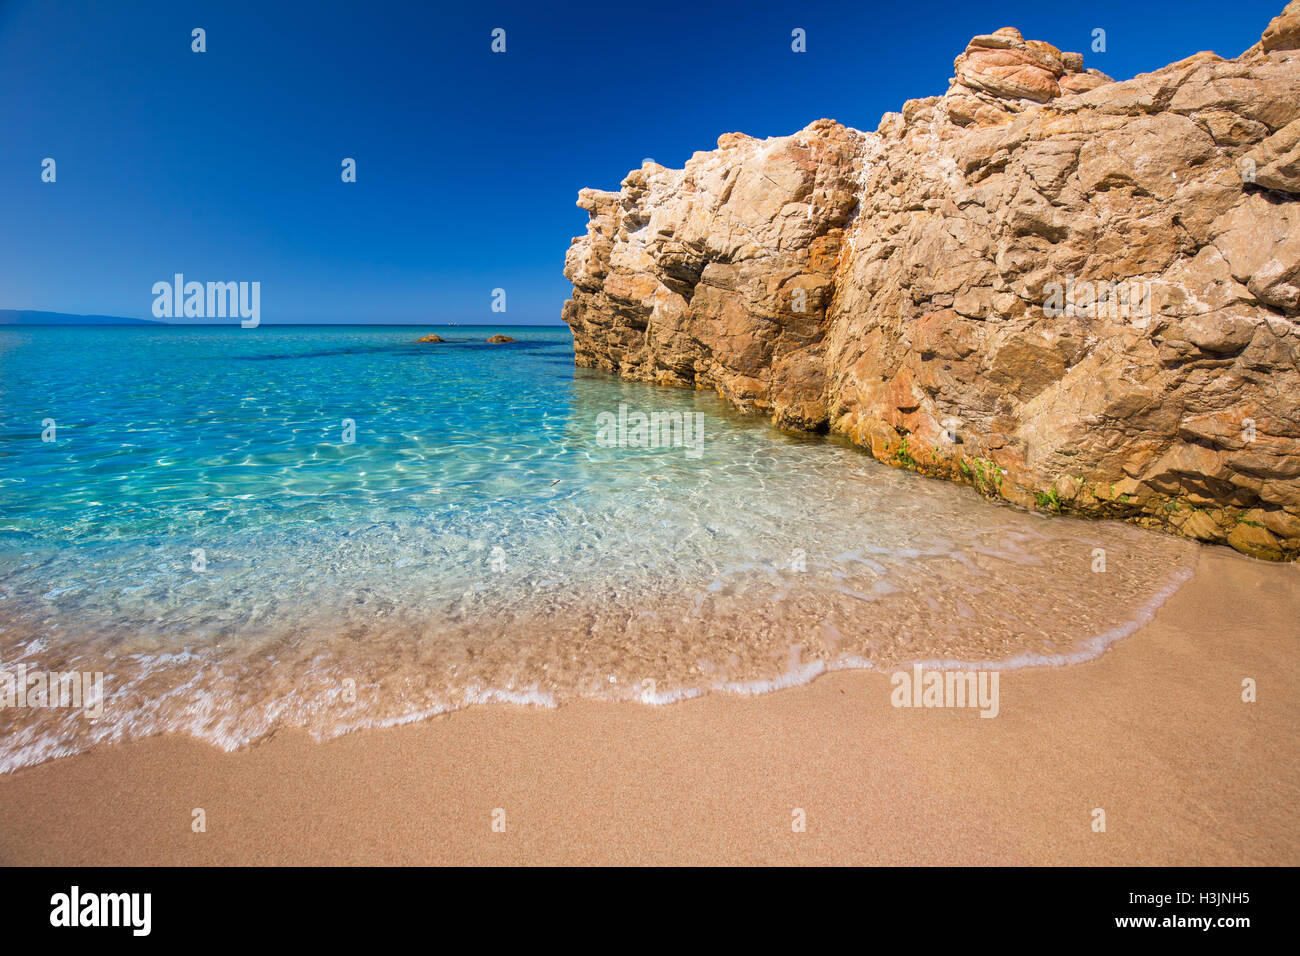 Beautiful sandy beach with rocks and tourquise clear water near Cargese, Corsica, France, Europe. - Stock Image